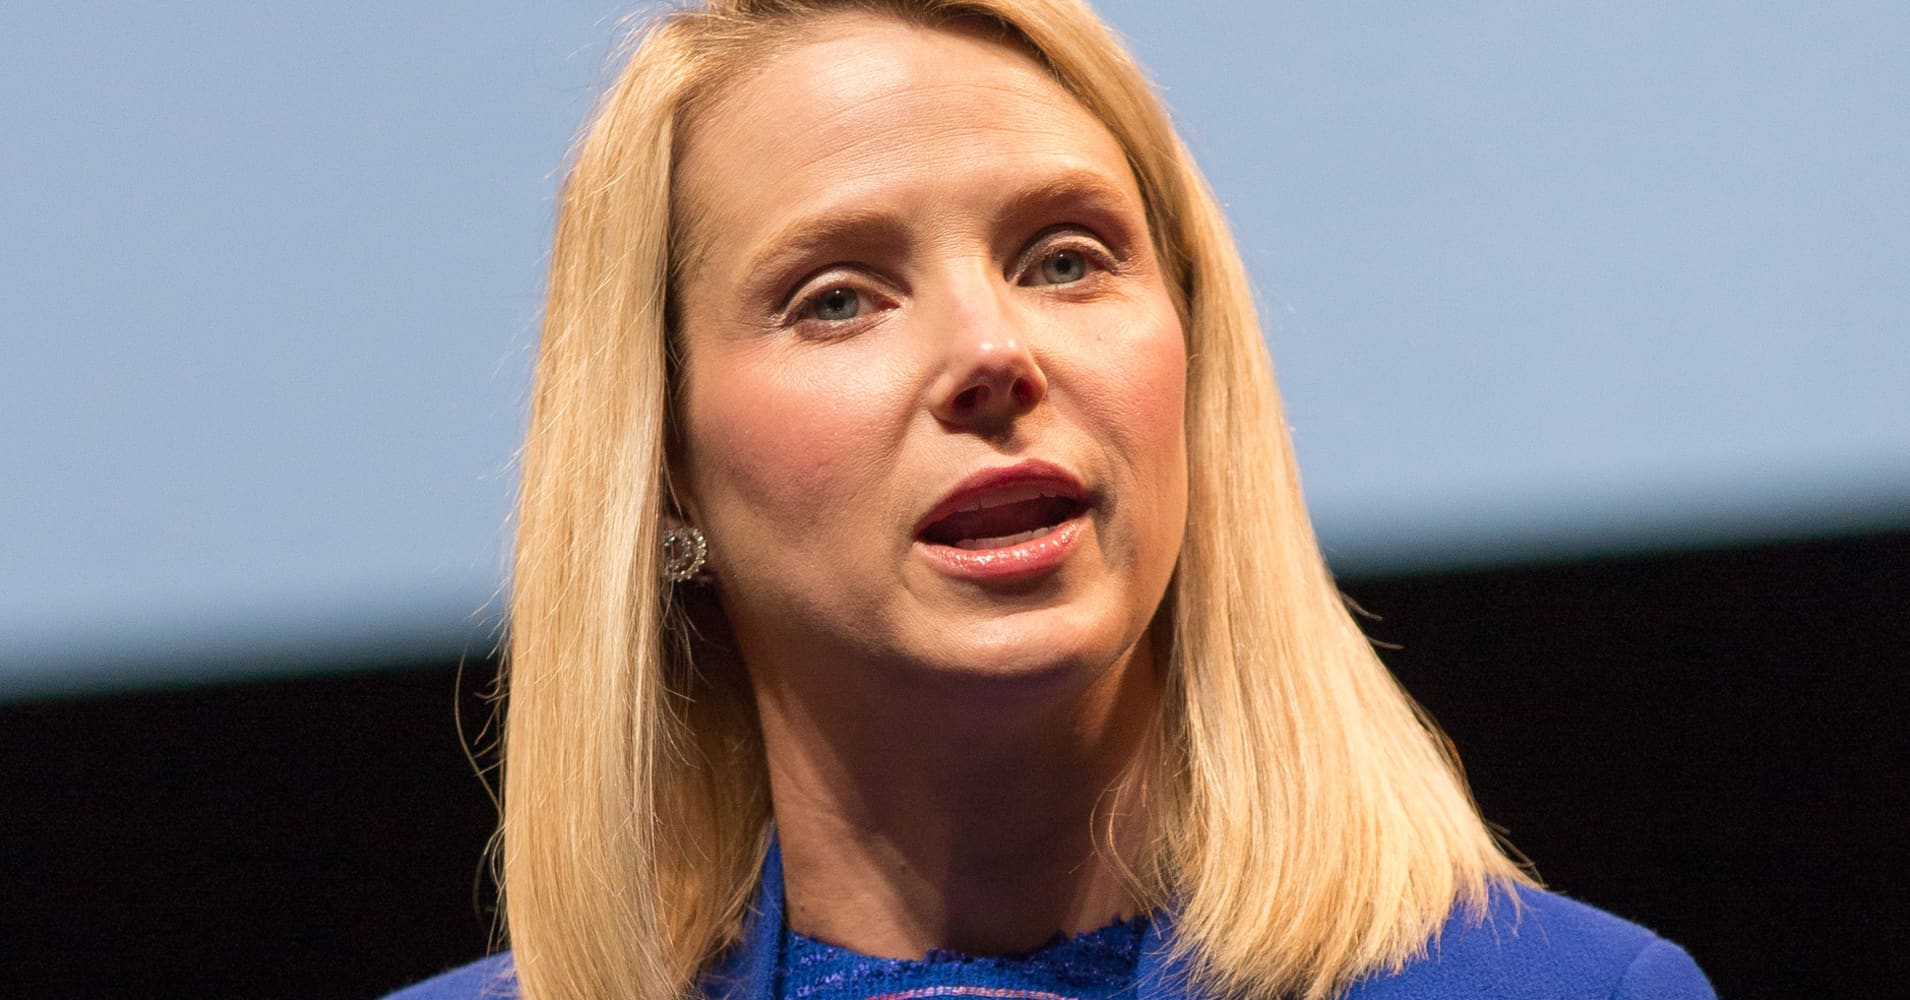 Yahoo's chief executive, Marissa Mayer, speaks at the 2014 Cannes Lions in June in Cannes, France.